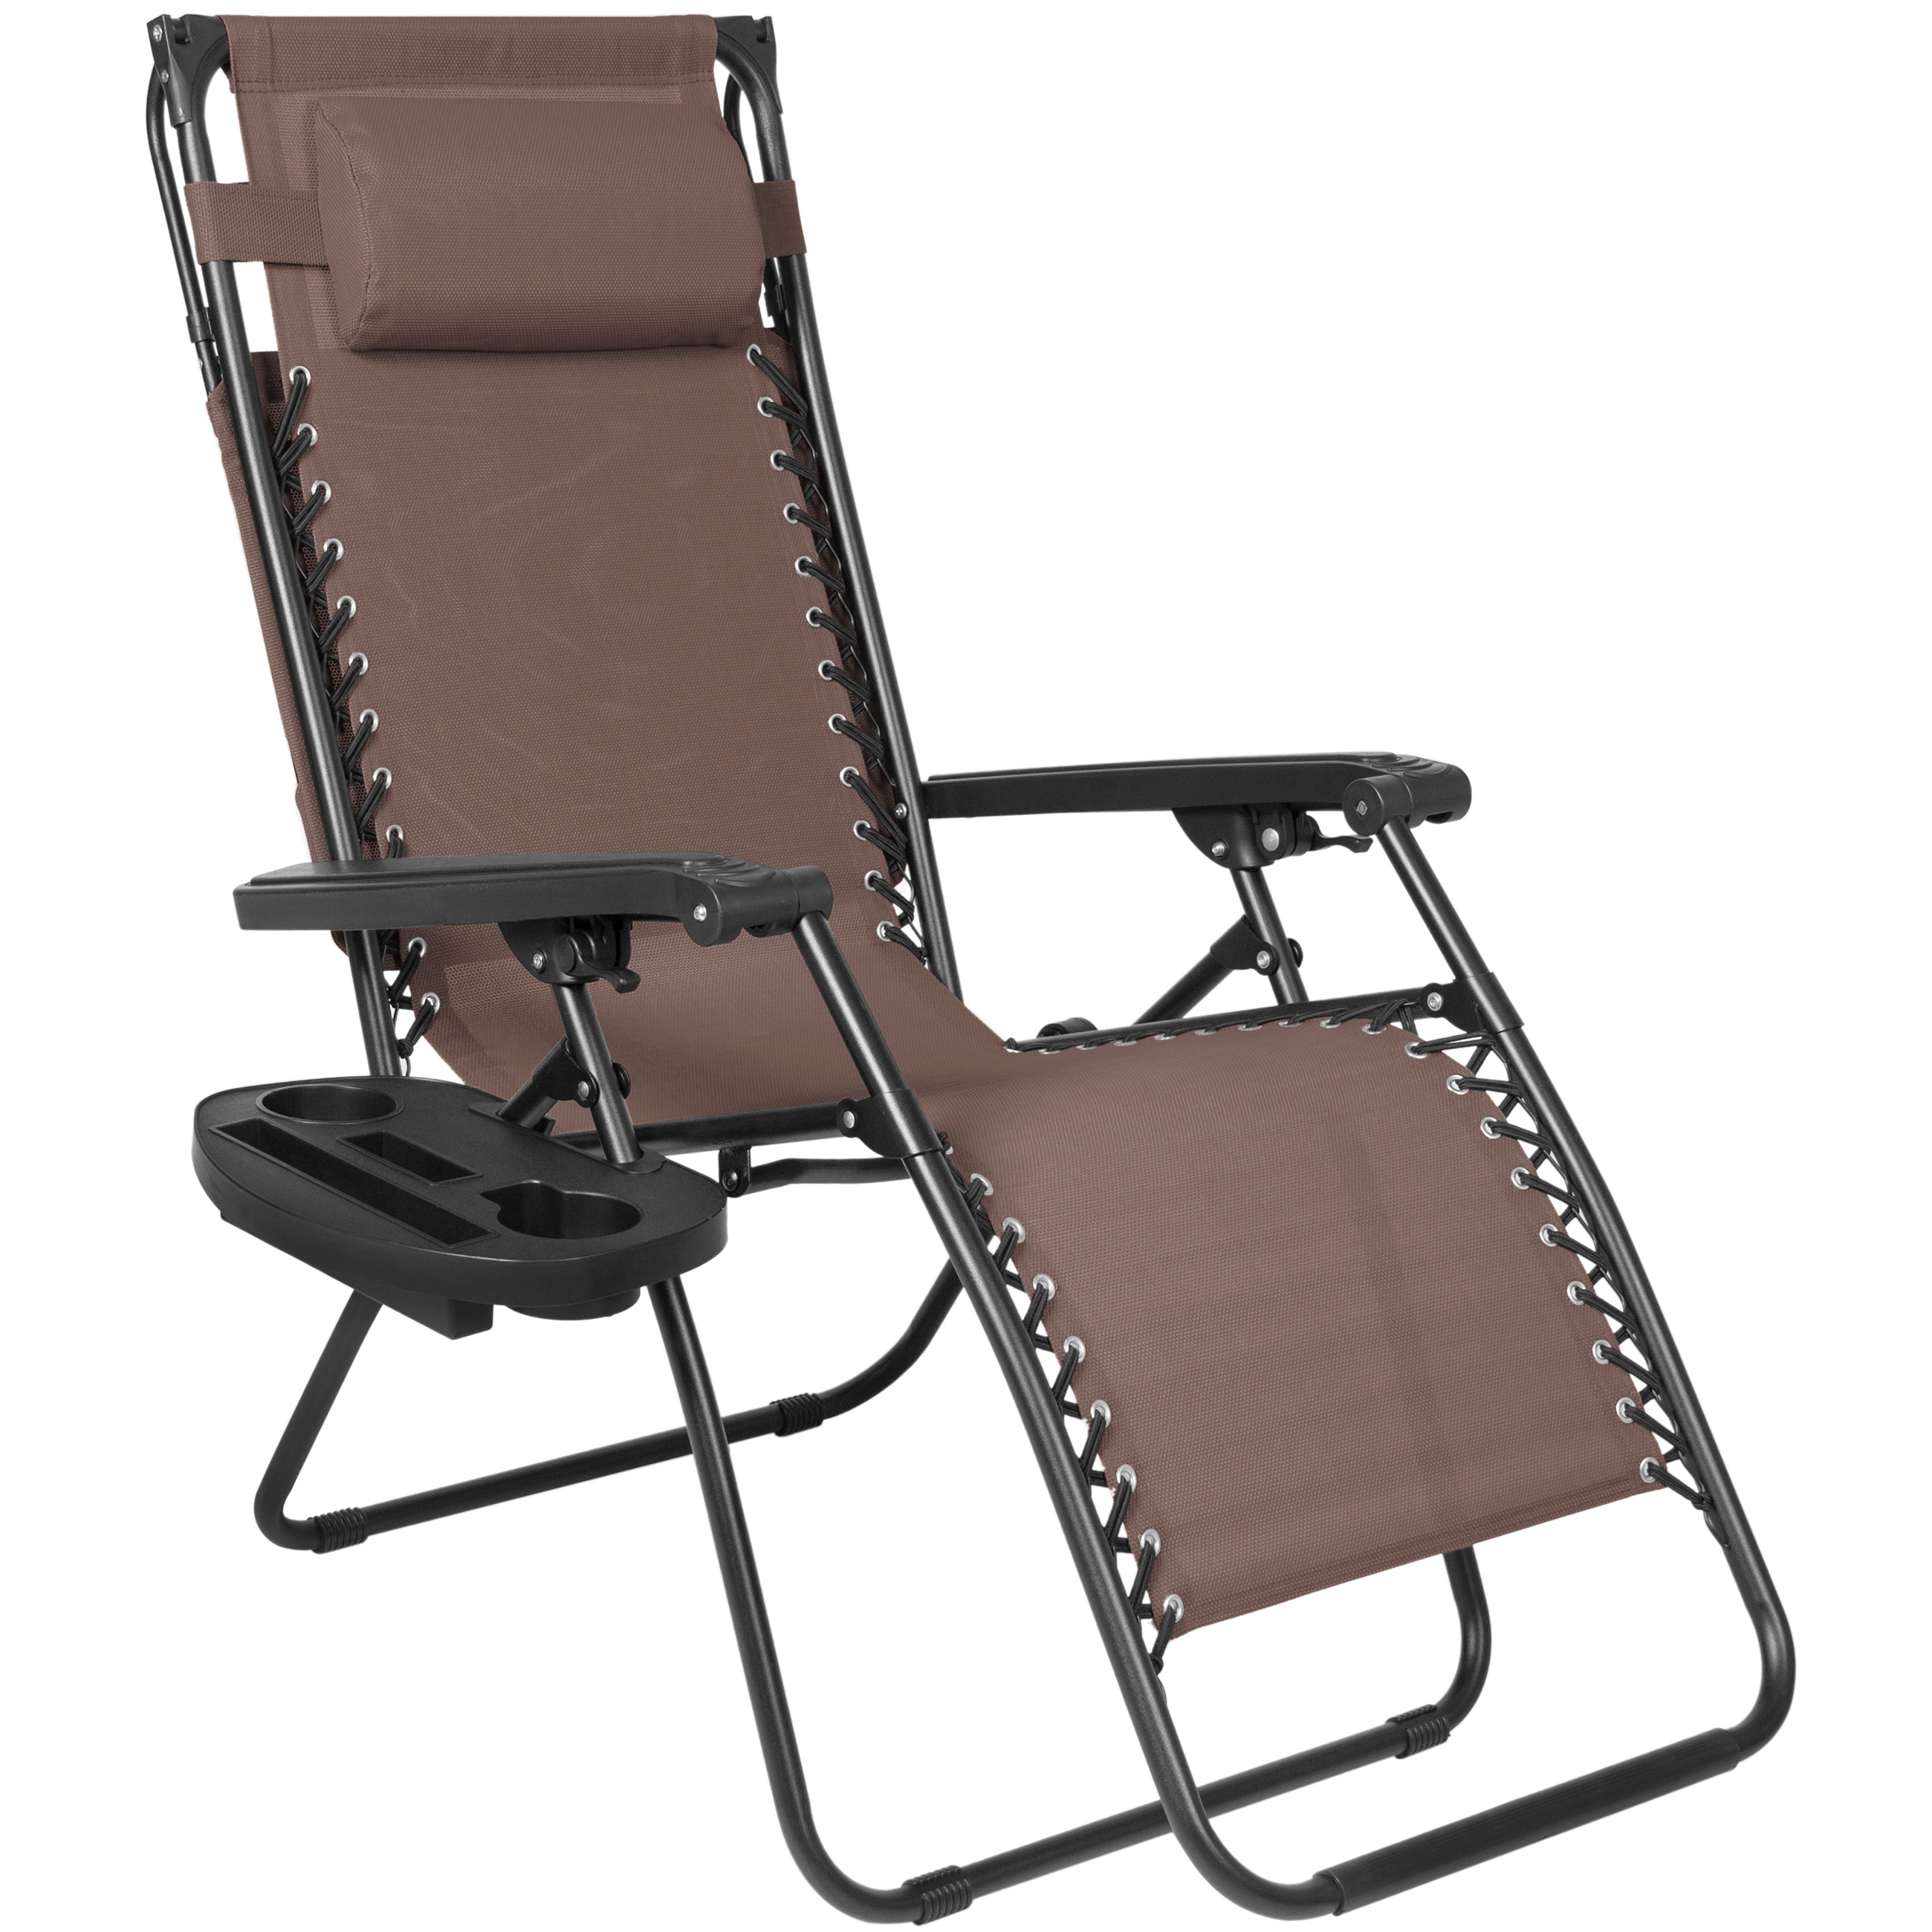 Folding Zero Gravity Lounge Chair W Canopy Amp Magazine Cup